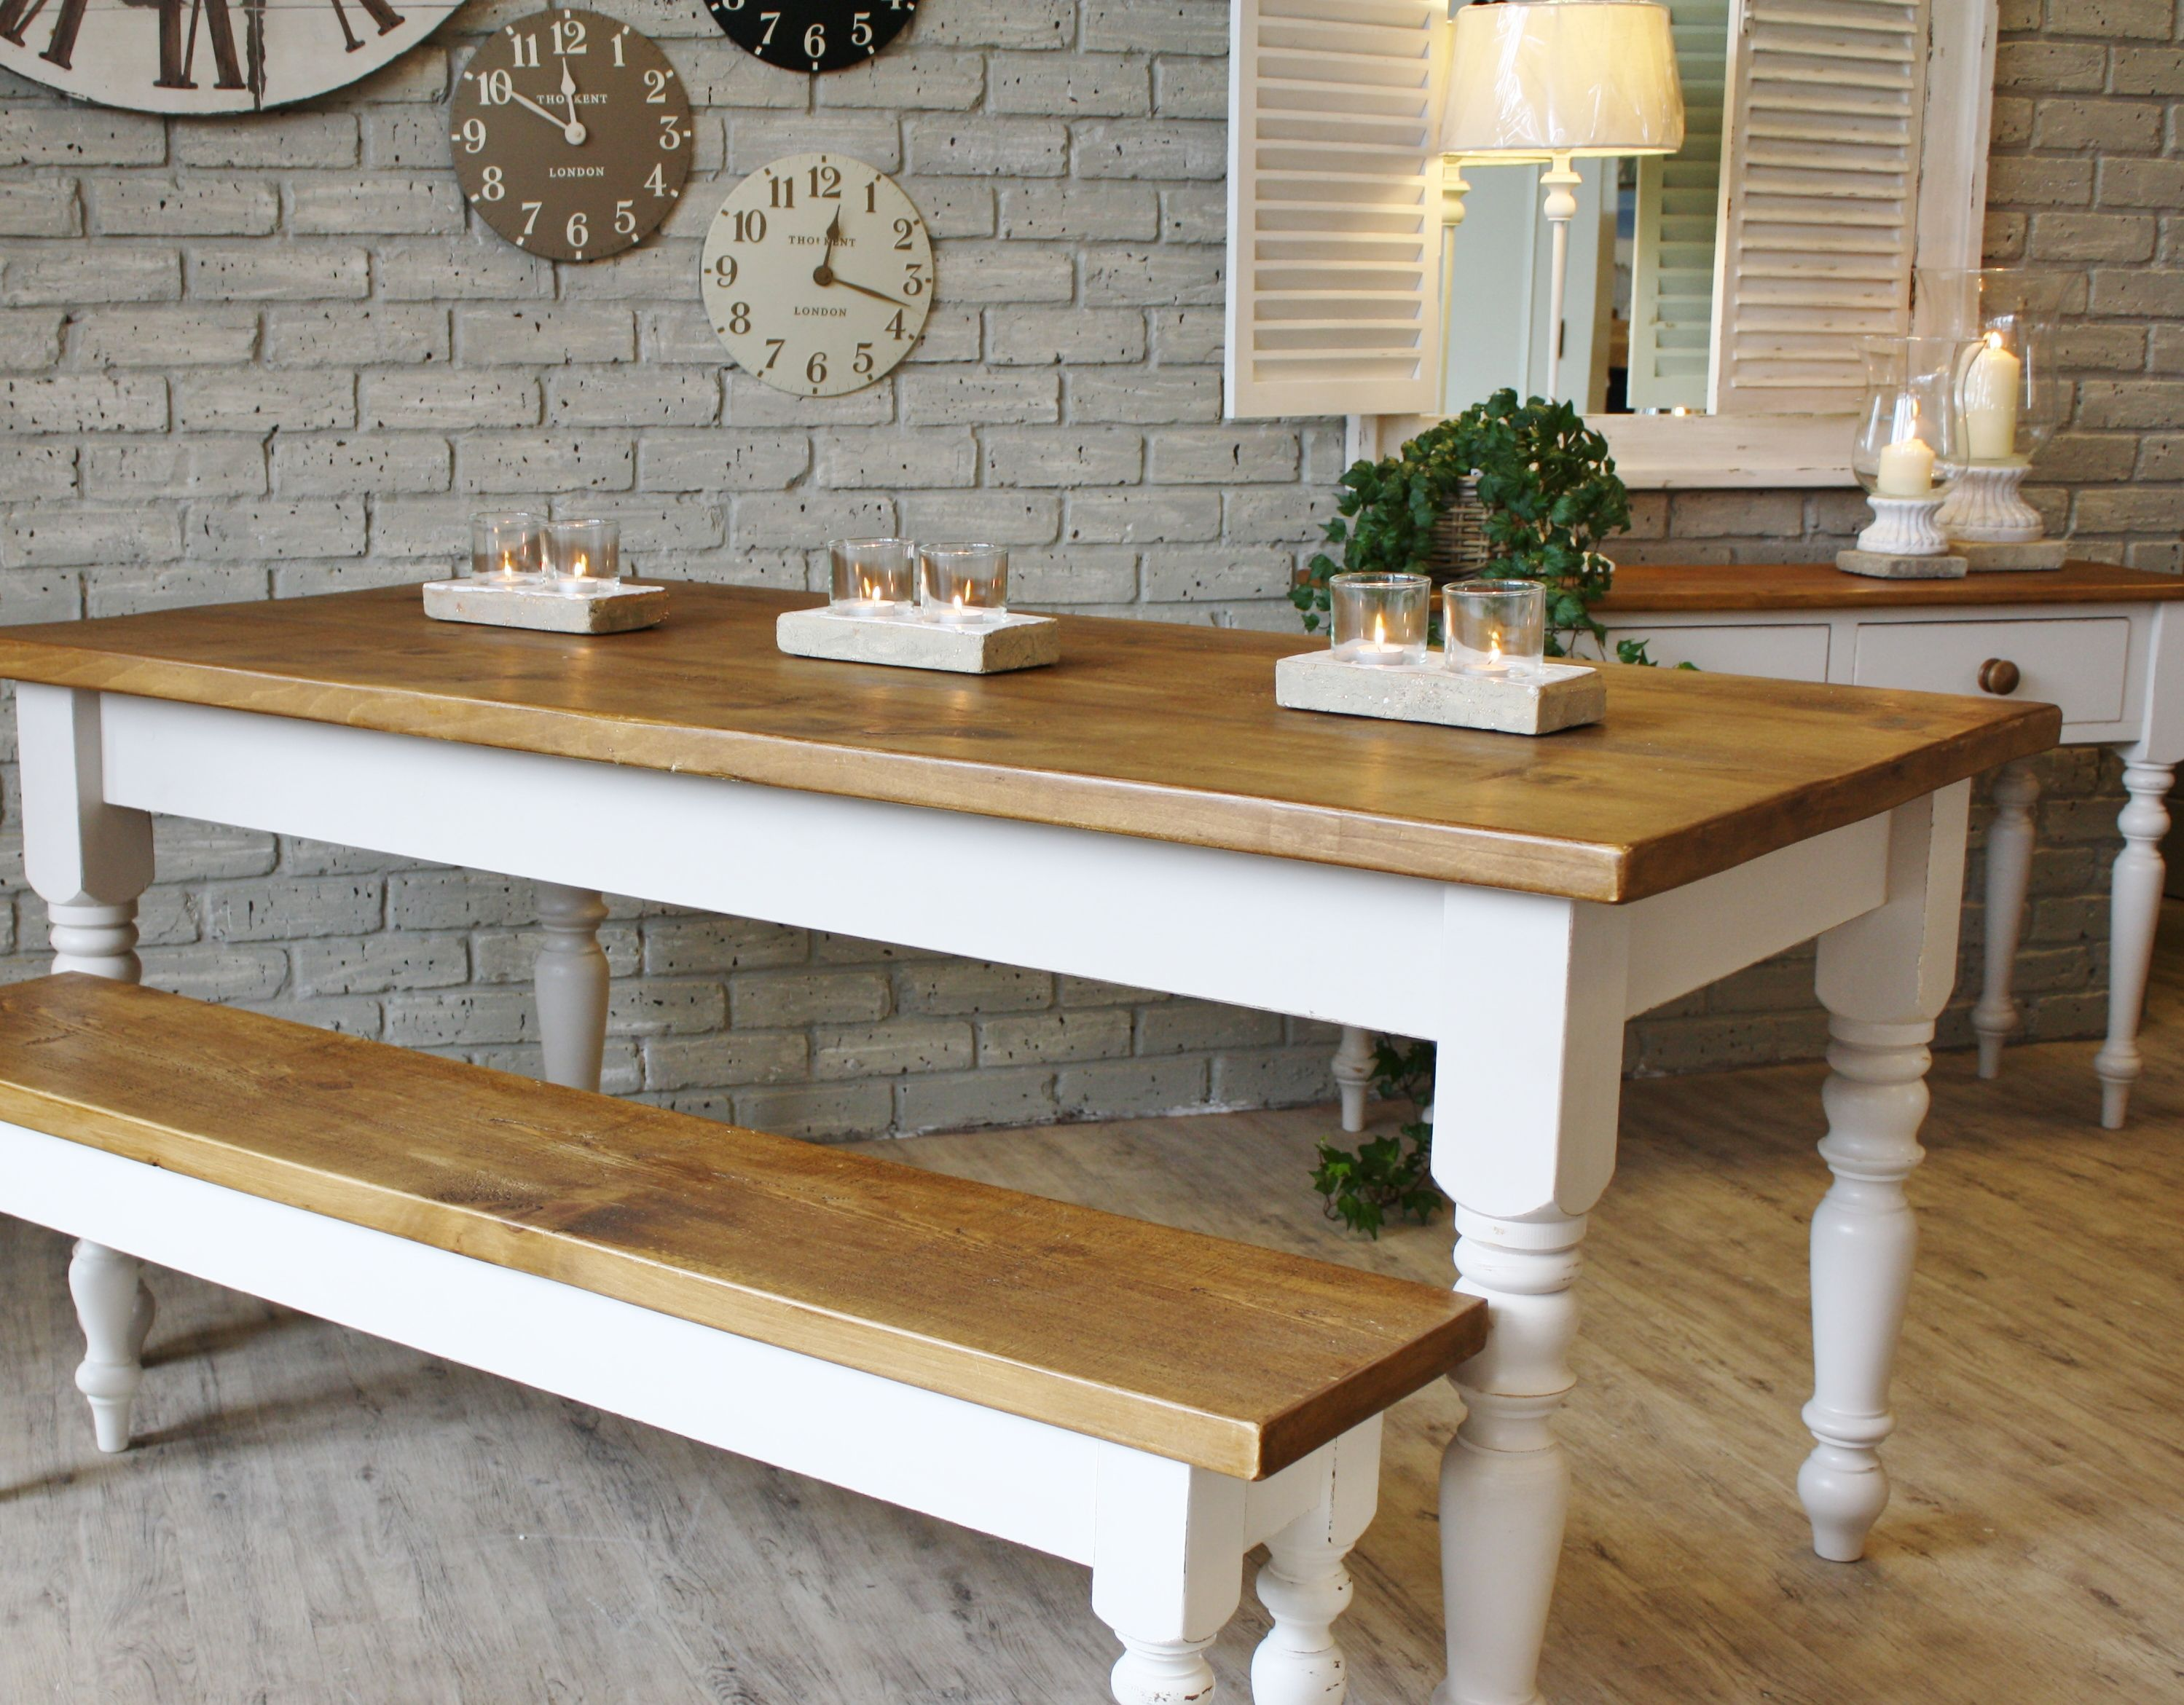 Kitchen Table With Bench Seating Furniture Kitchen Traditional Farmhouse  Kitchen Designs With Rectangle Wooden Table And Kitchen Bench With Brick  Exposed ...